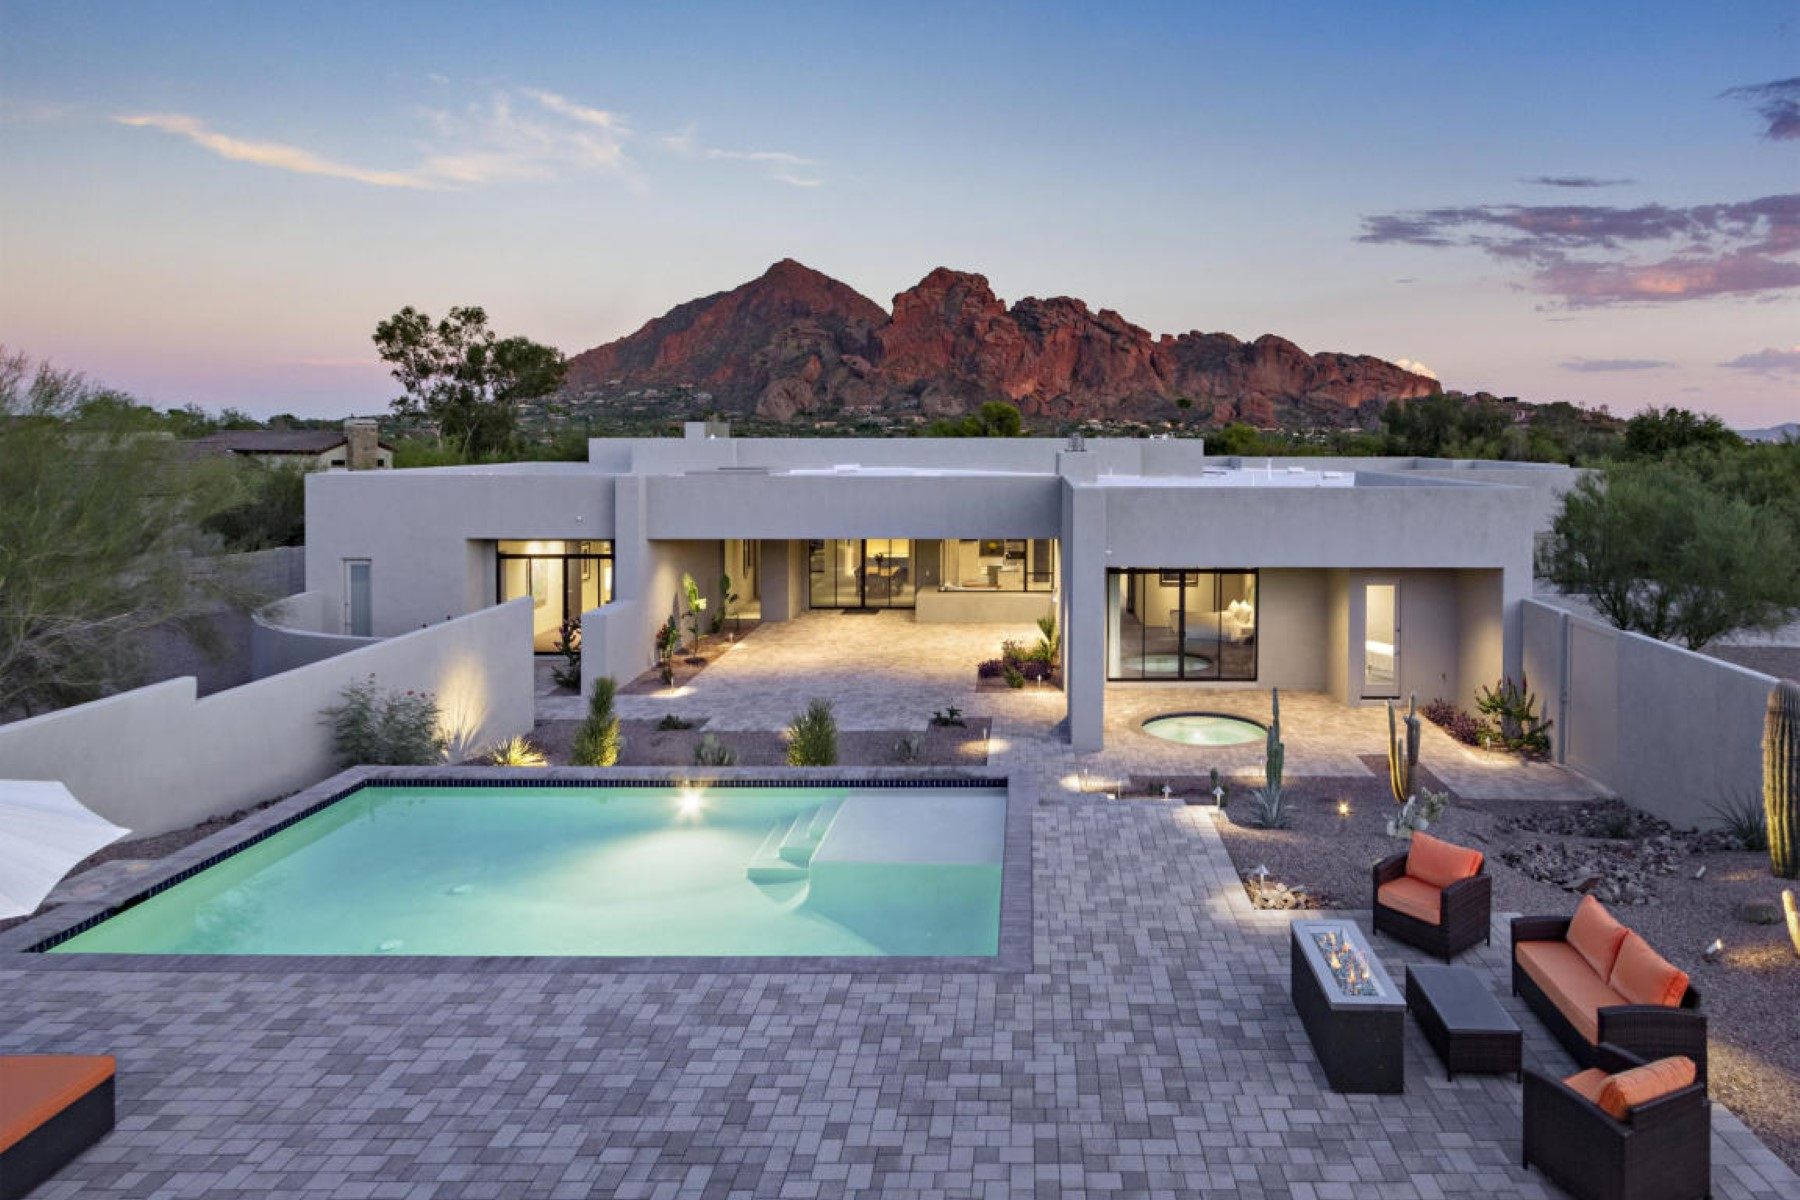 Maison unifamiliale pour l Vente à Luxury contemporary home in Paradise Valley 4700 E Sierra Vista Dr Paradise Valley, Arizona, 85253 États-Unis